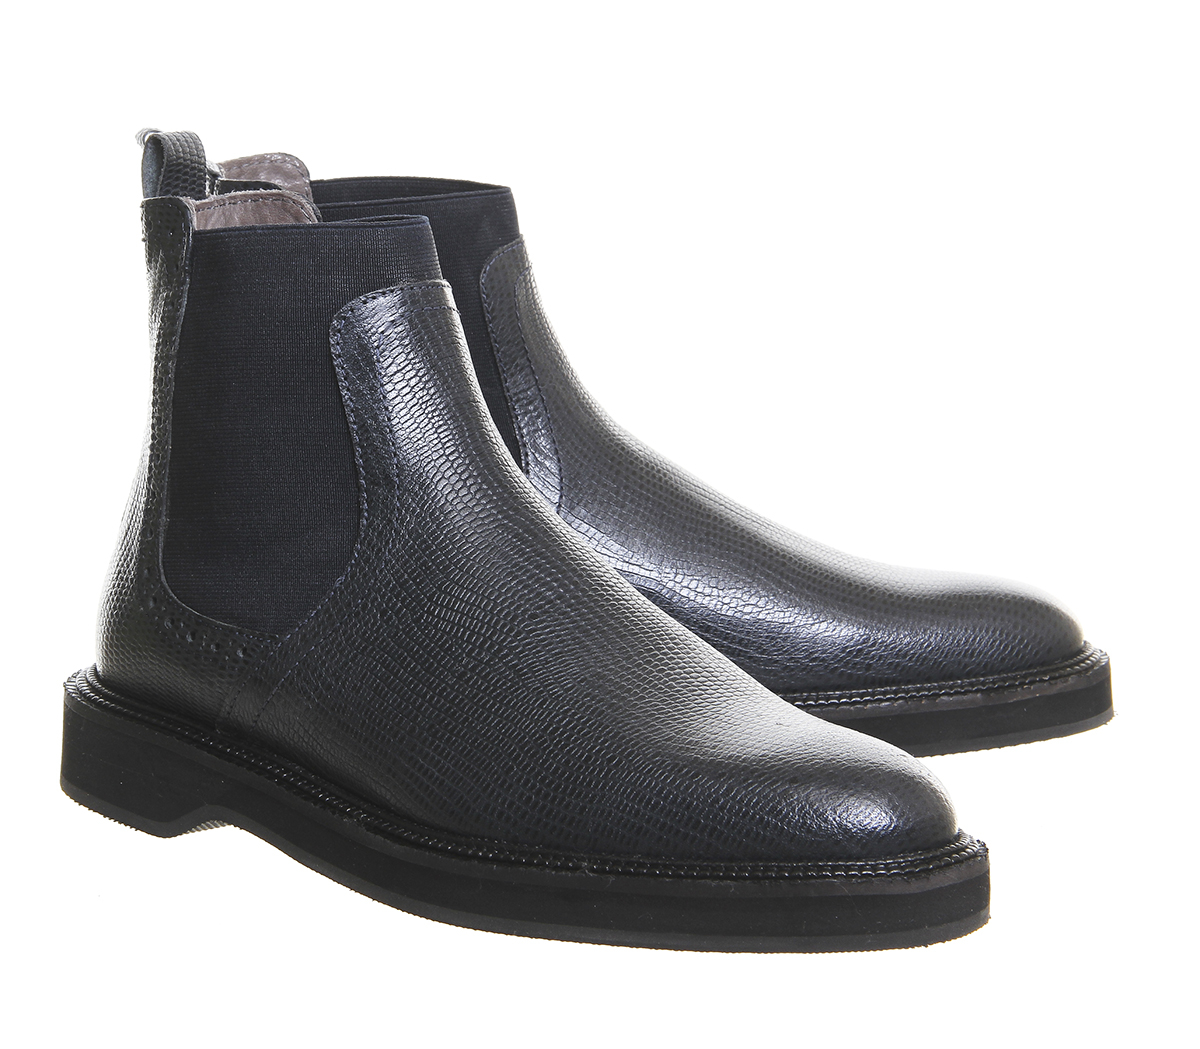 h by hudson bopp chelsea boots in black lyst